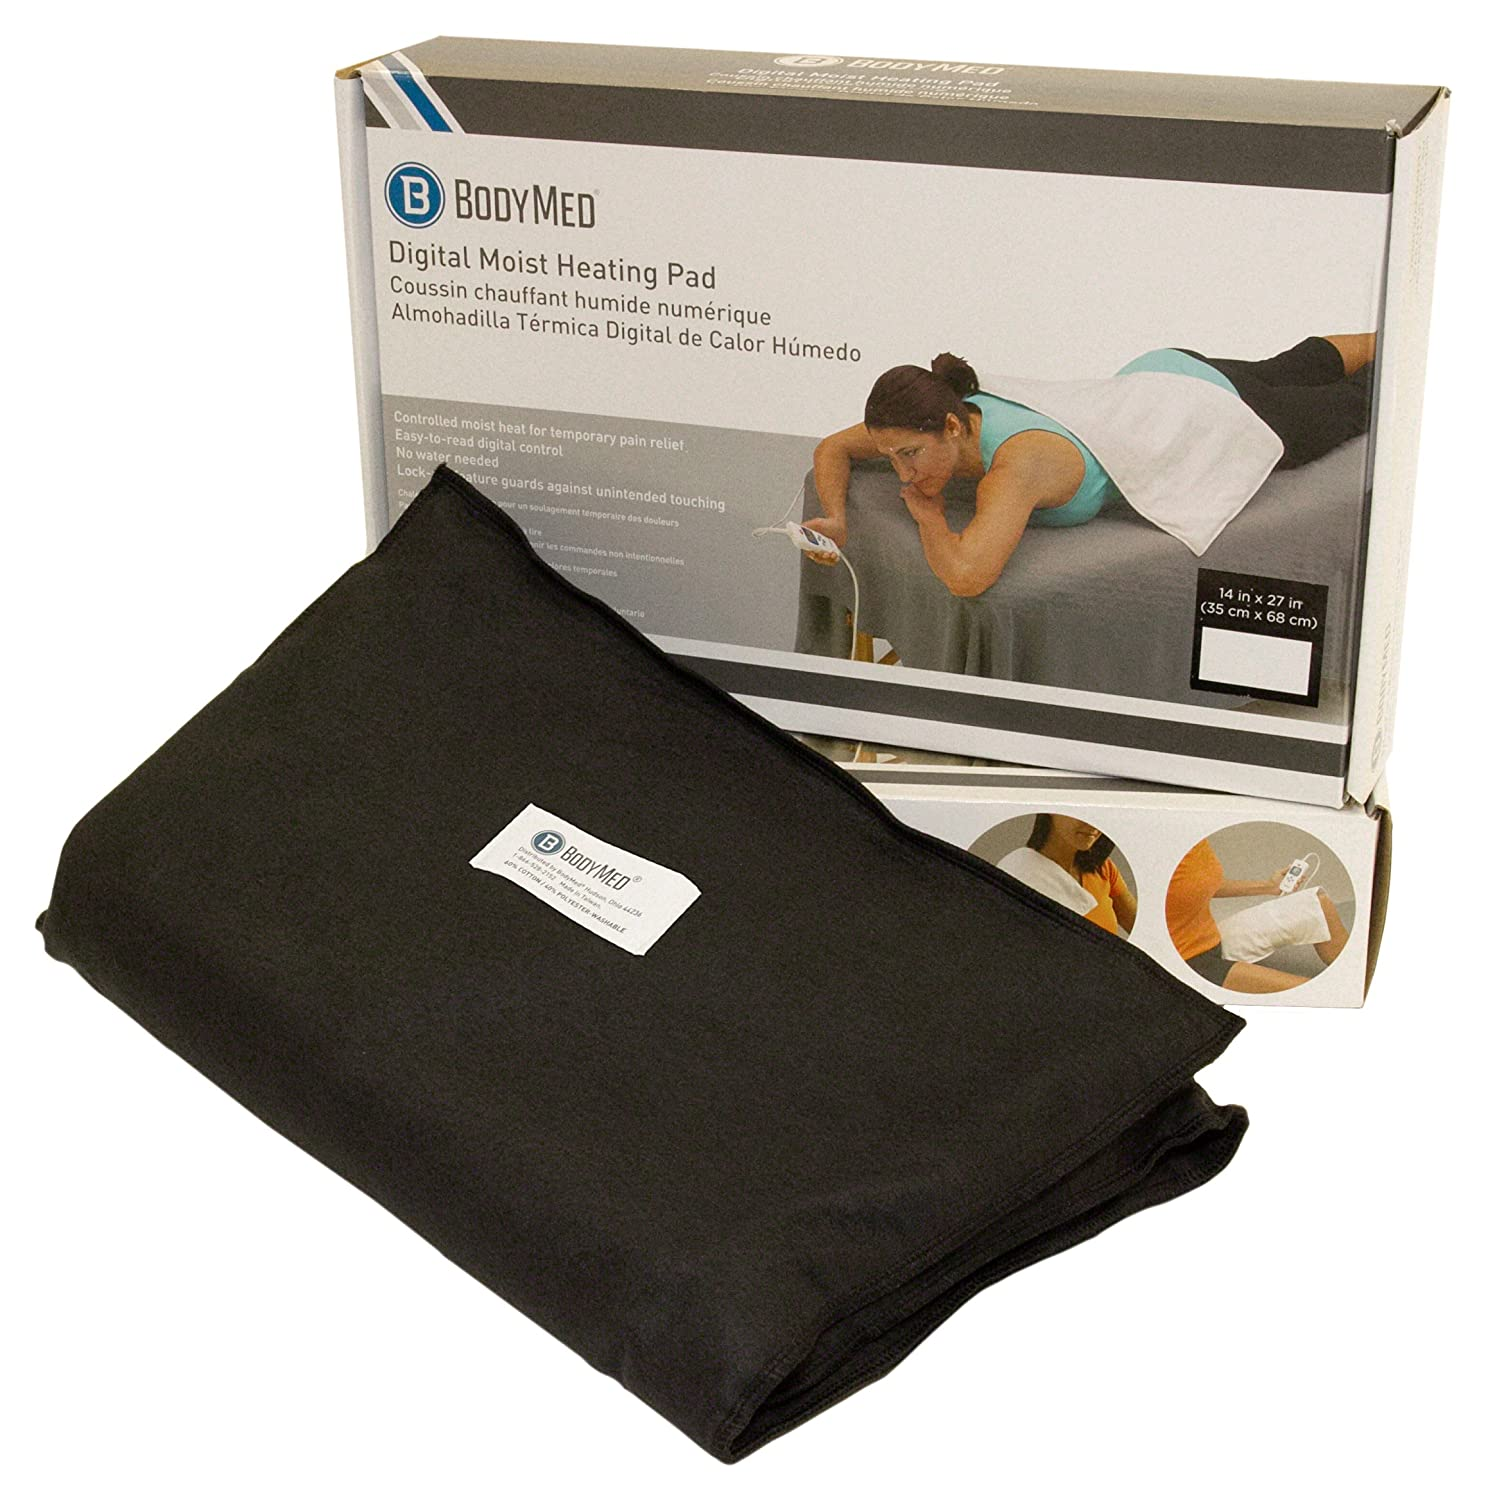 BodyMed Digital Moist Heating Pad with Auto Shut Off Heating Pad for Neck and Shoulders, Back Pain and Muscle Pain Relief